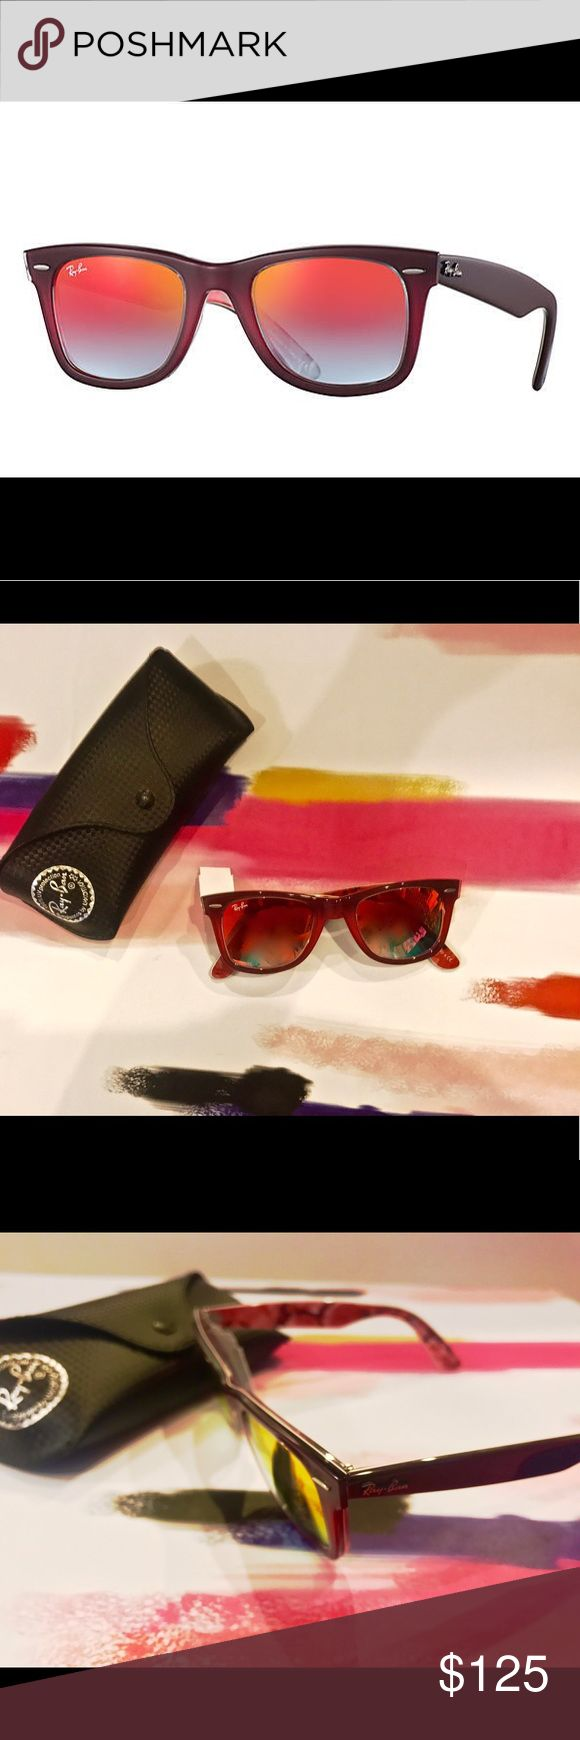 NWT Ray Ban Wayfarers Pink Flash Sunglasses Ray Ban Original Pink Fradient Flash Sunglasses.  Frame is pink/brown with orange/multi colored lenses. Inside frame designed with multi colored flowers. Ray-Ban Accessories Sunglasses